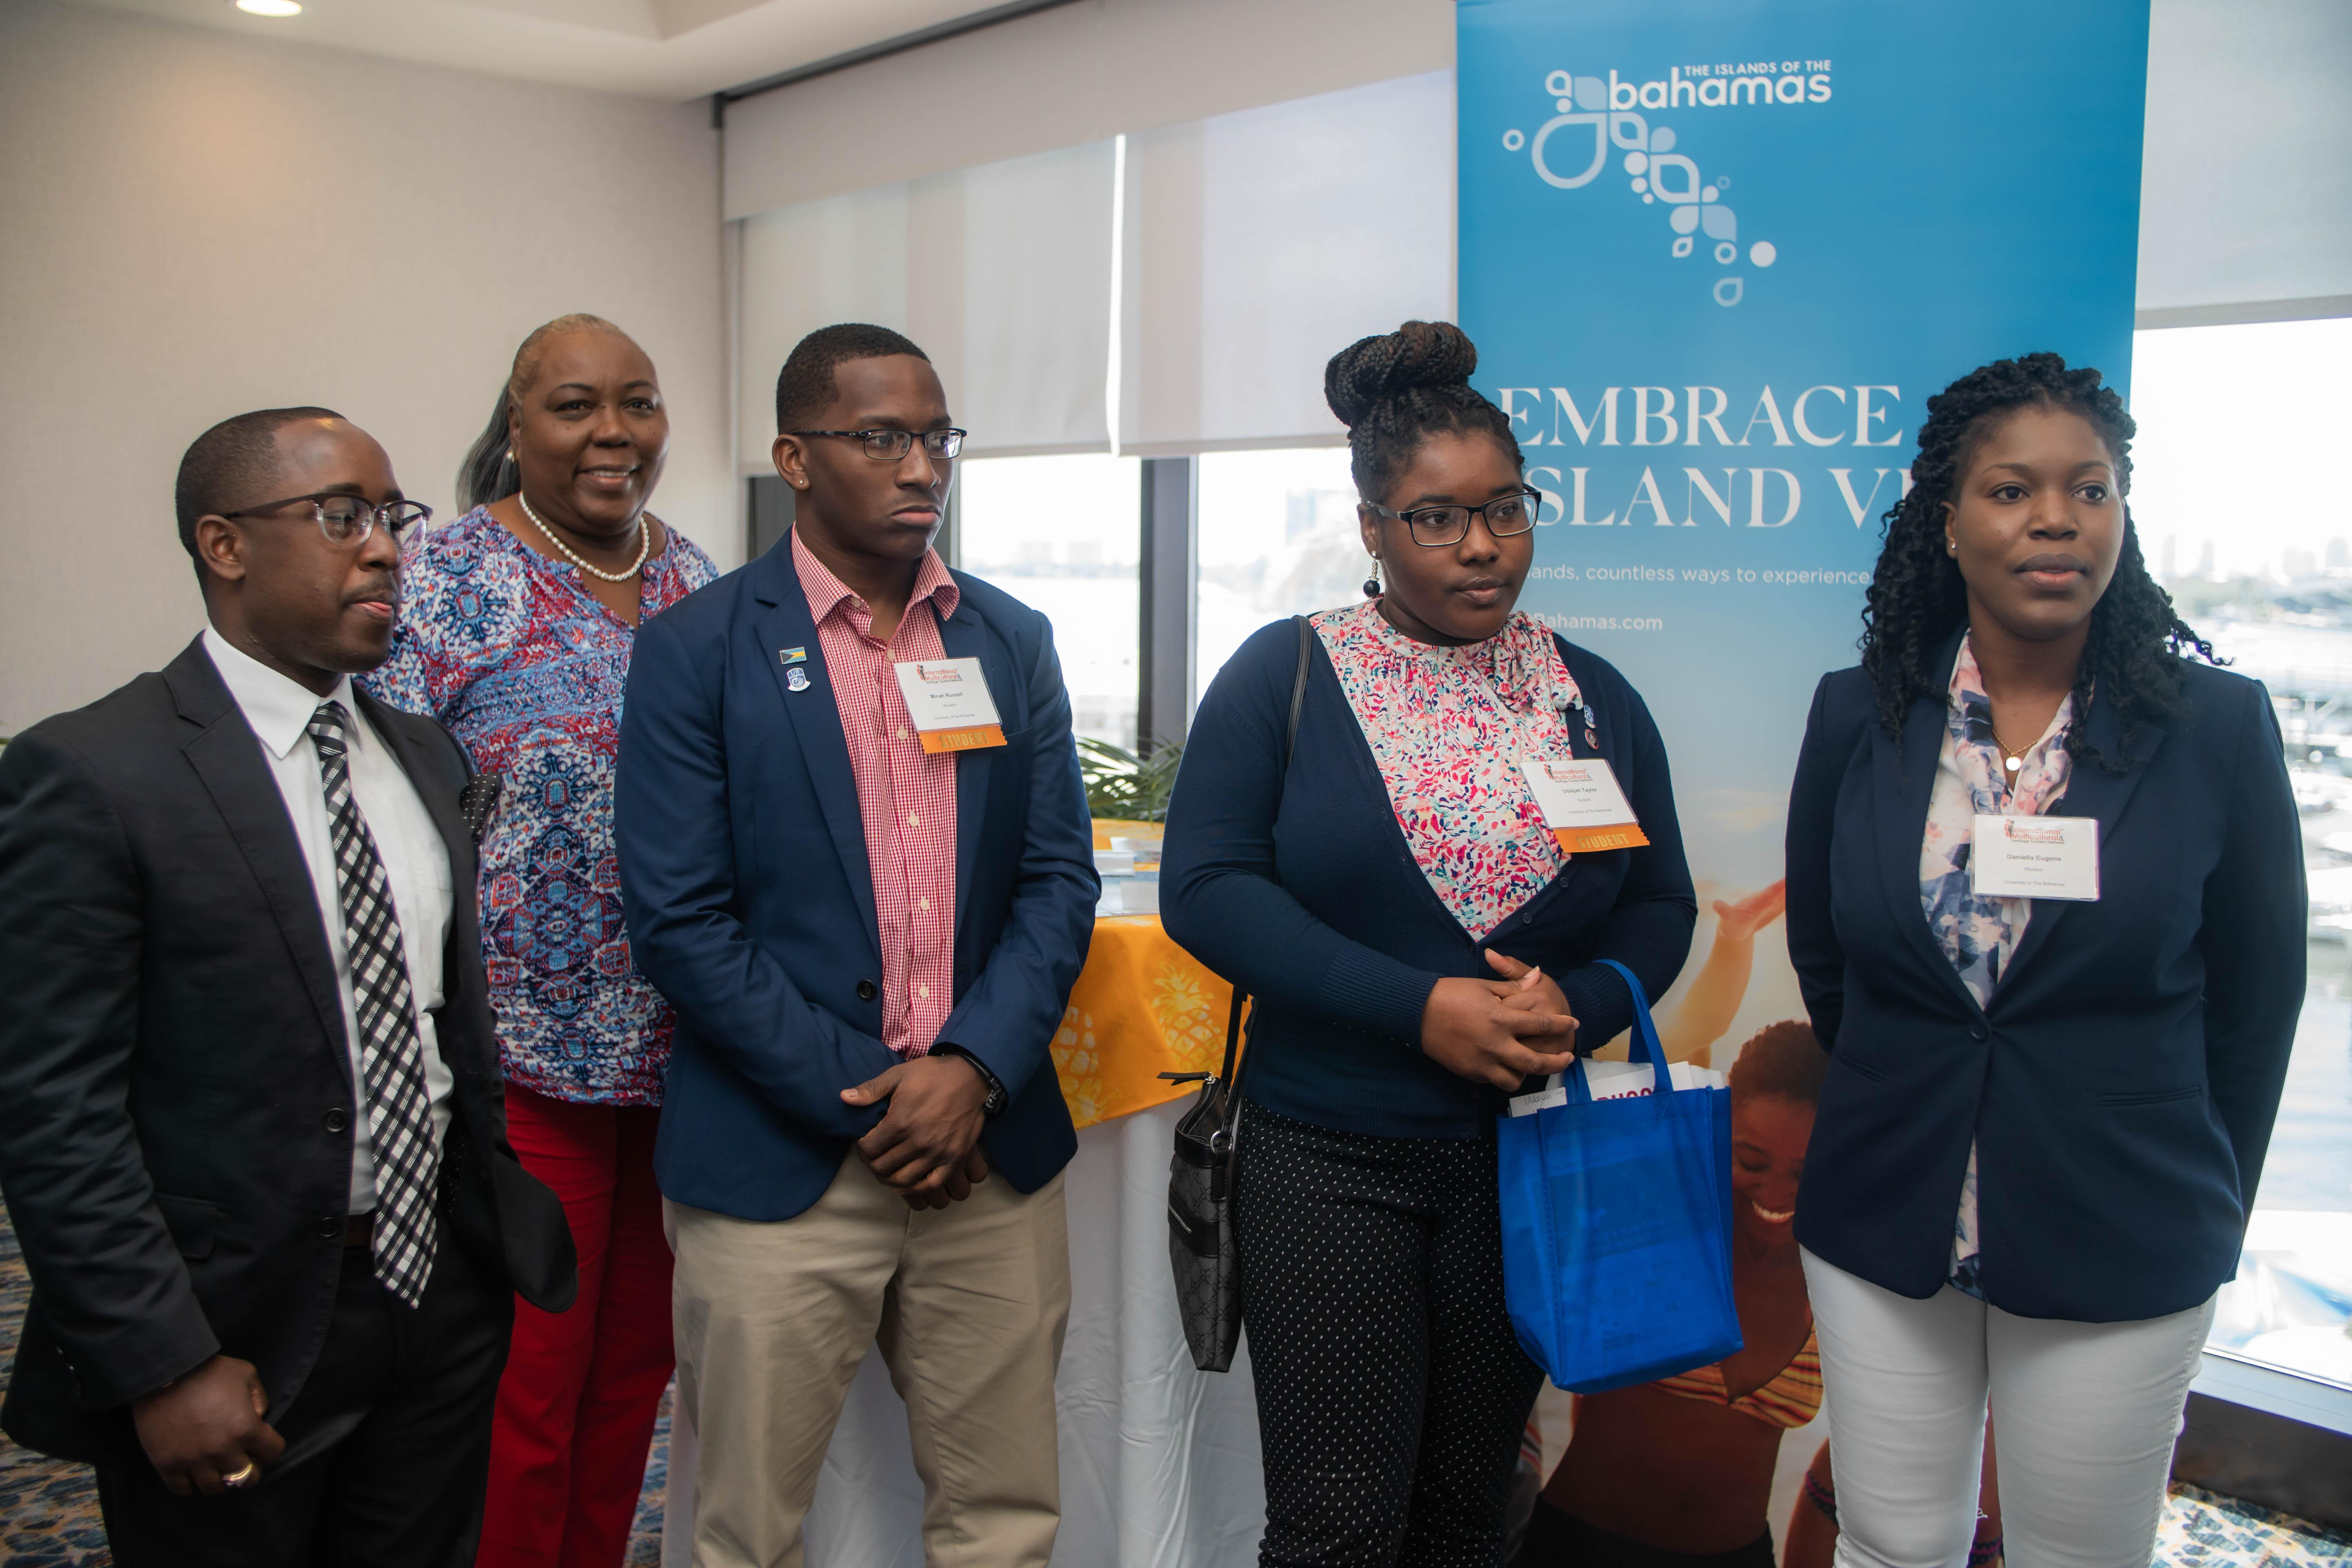 Pictured are Bahamian students who were in attendance at the recent Annual Summit and Trade Show of the National Association of Black Hotel Owners, Operators and Developers and the International Multicultural and Heritage Tourism Network in Miami, Florida